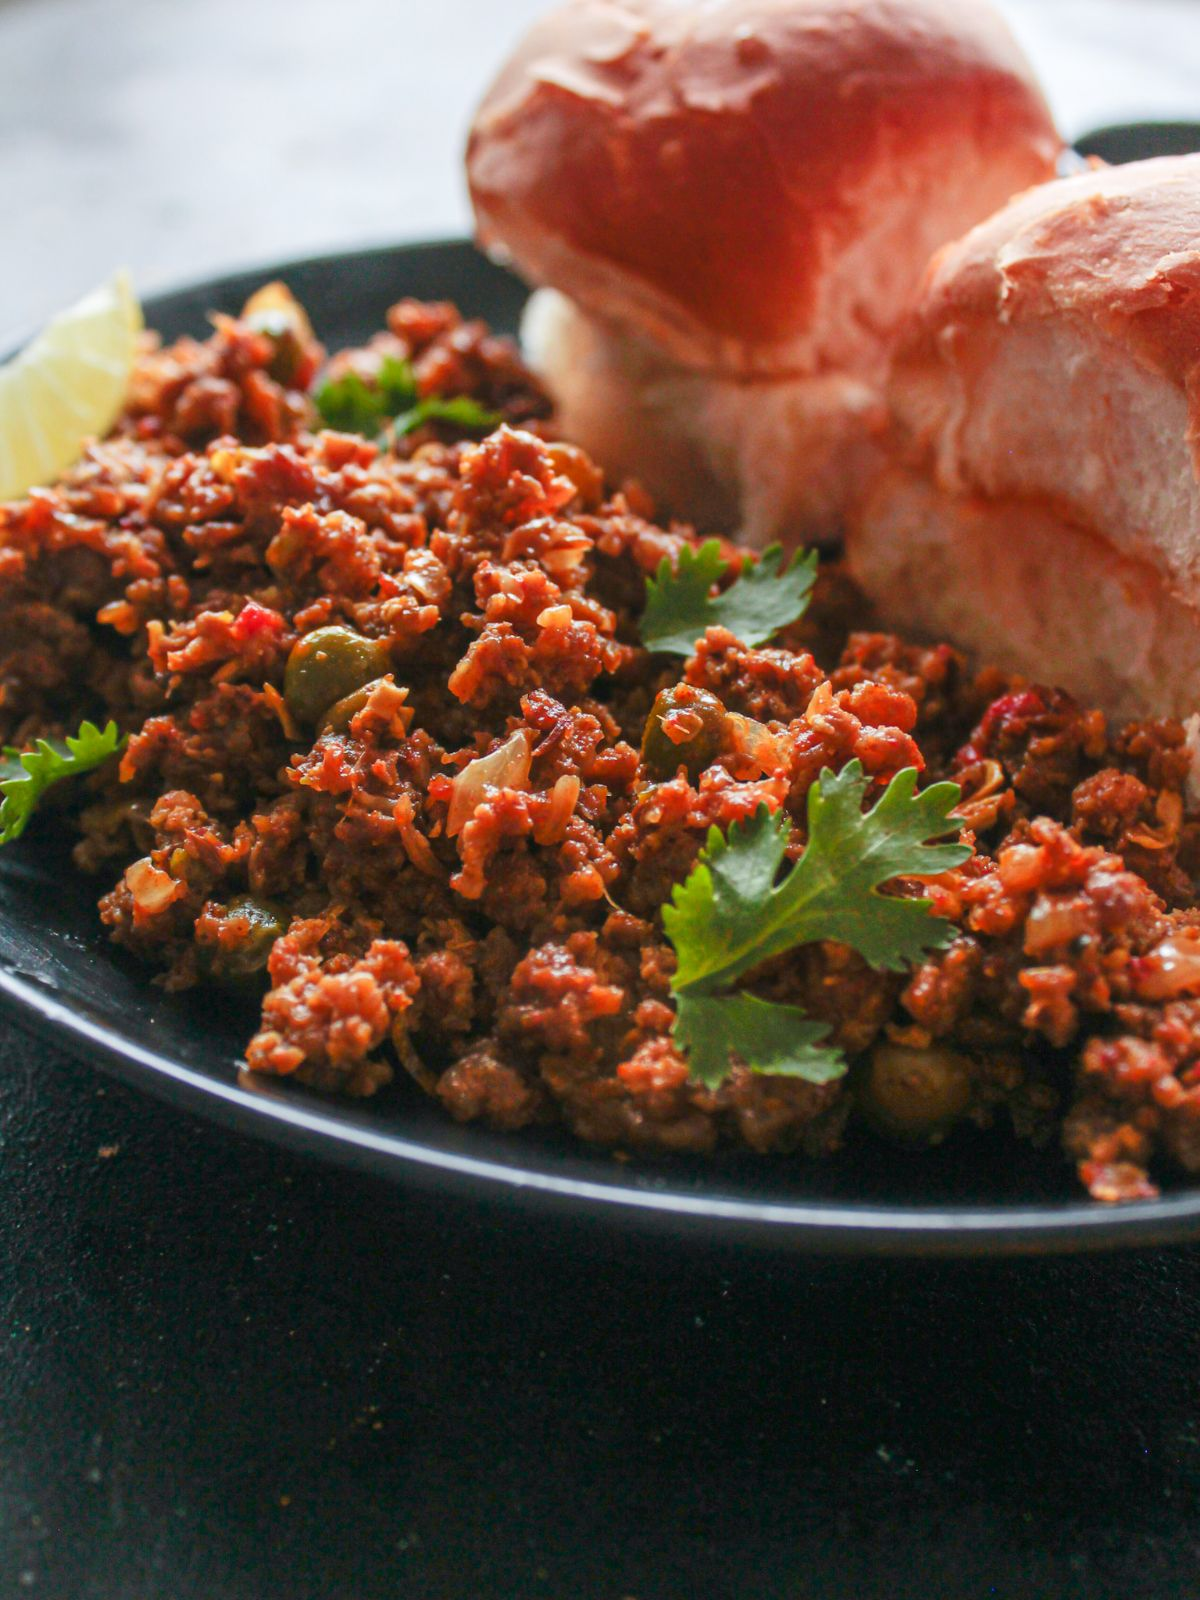 mutton keema on plate with rolls